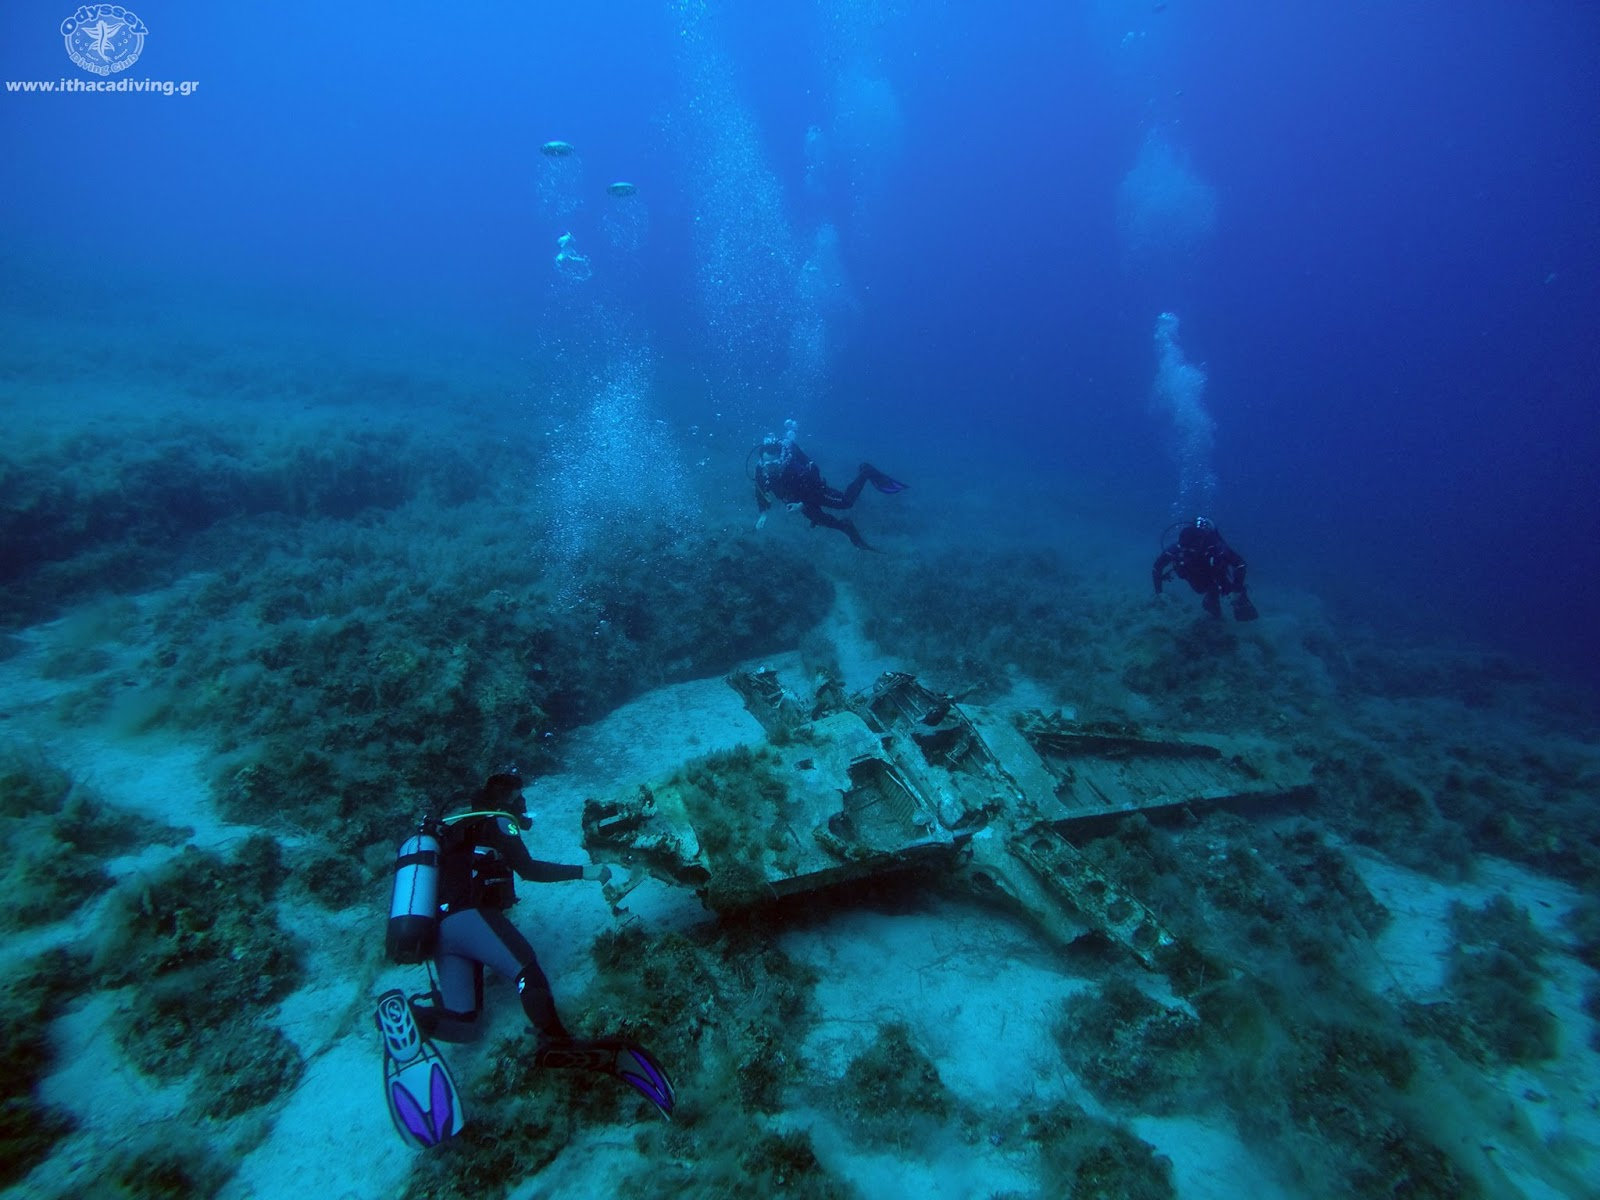 Found A Ww2 Aircraft Wreck In The Island Of Ulysses